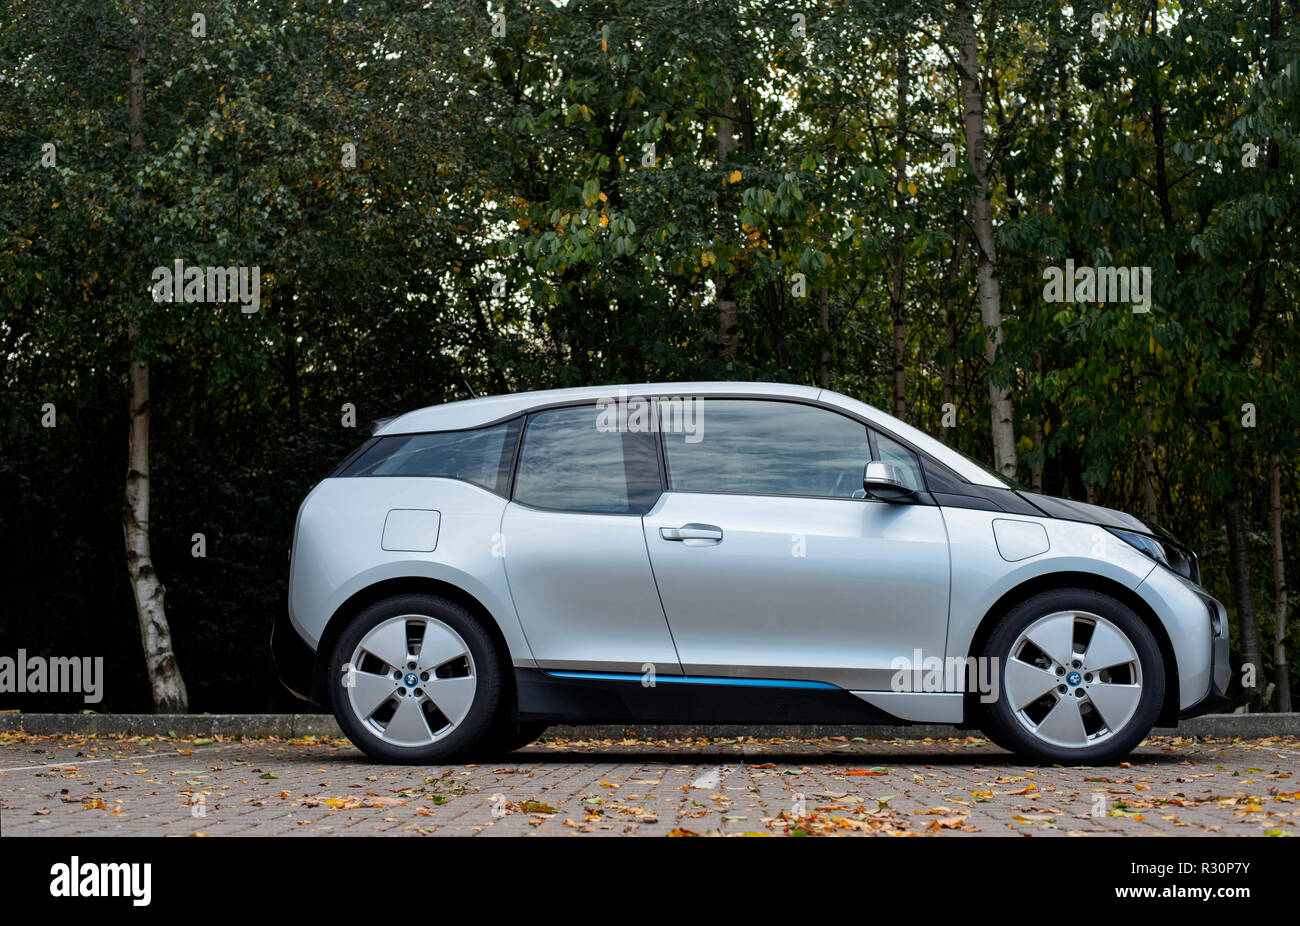 2015 Bmw I3 Range Extender Electric Car Stock Photo 225596223 Alamy